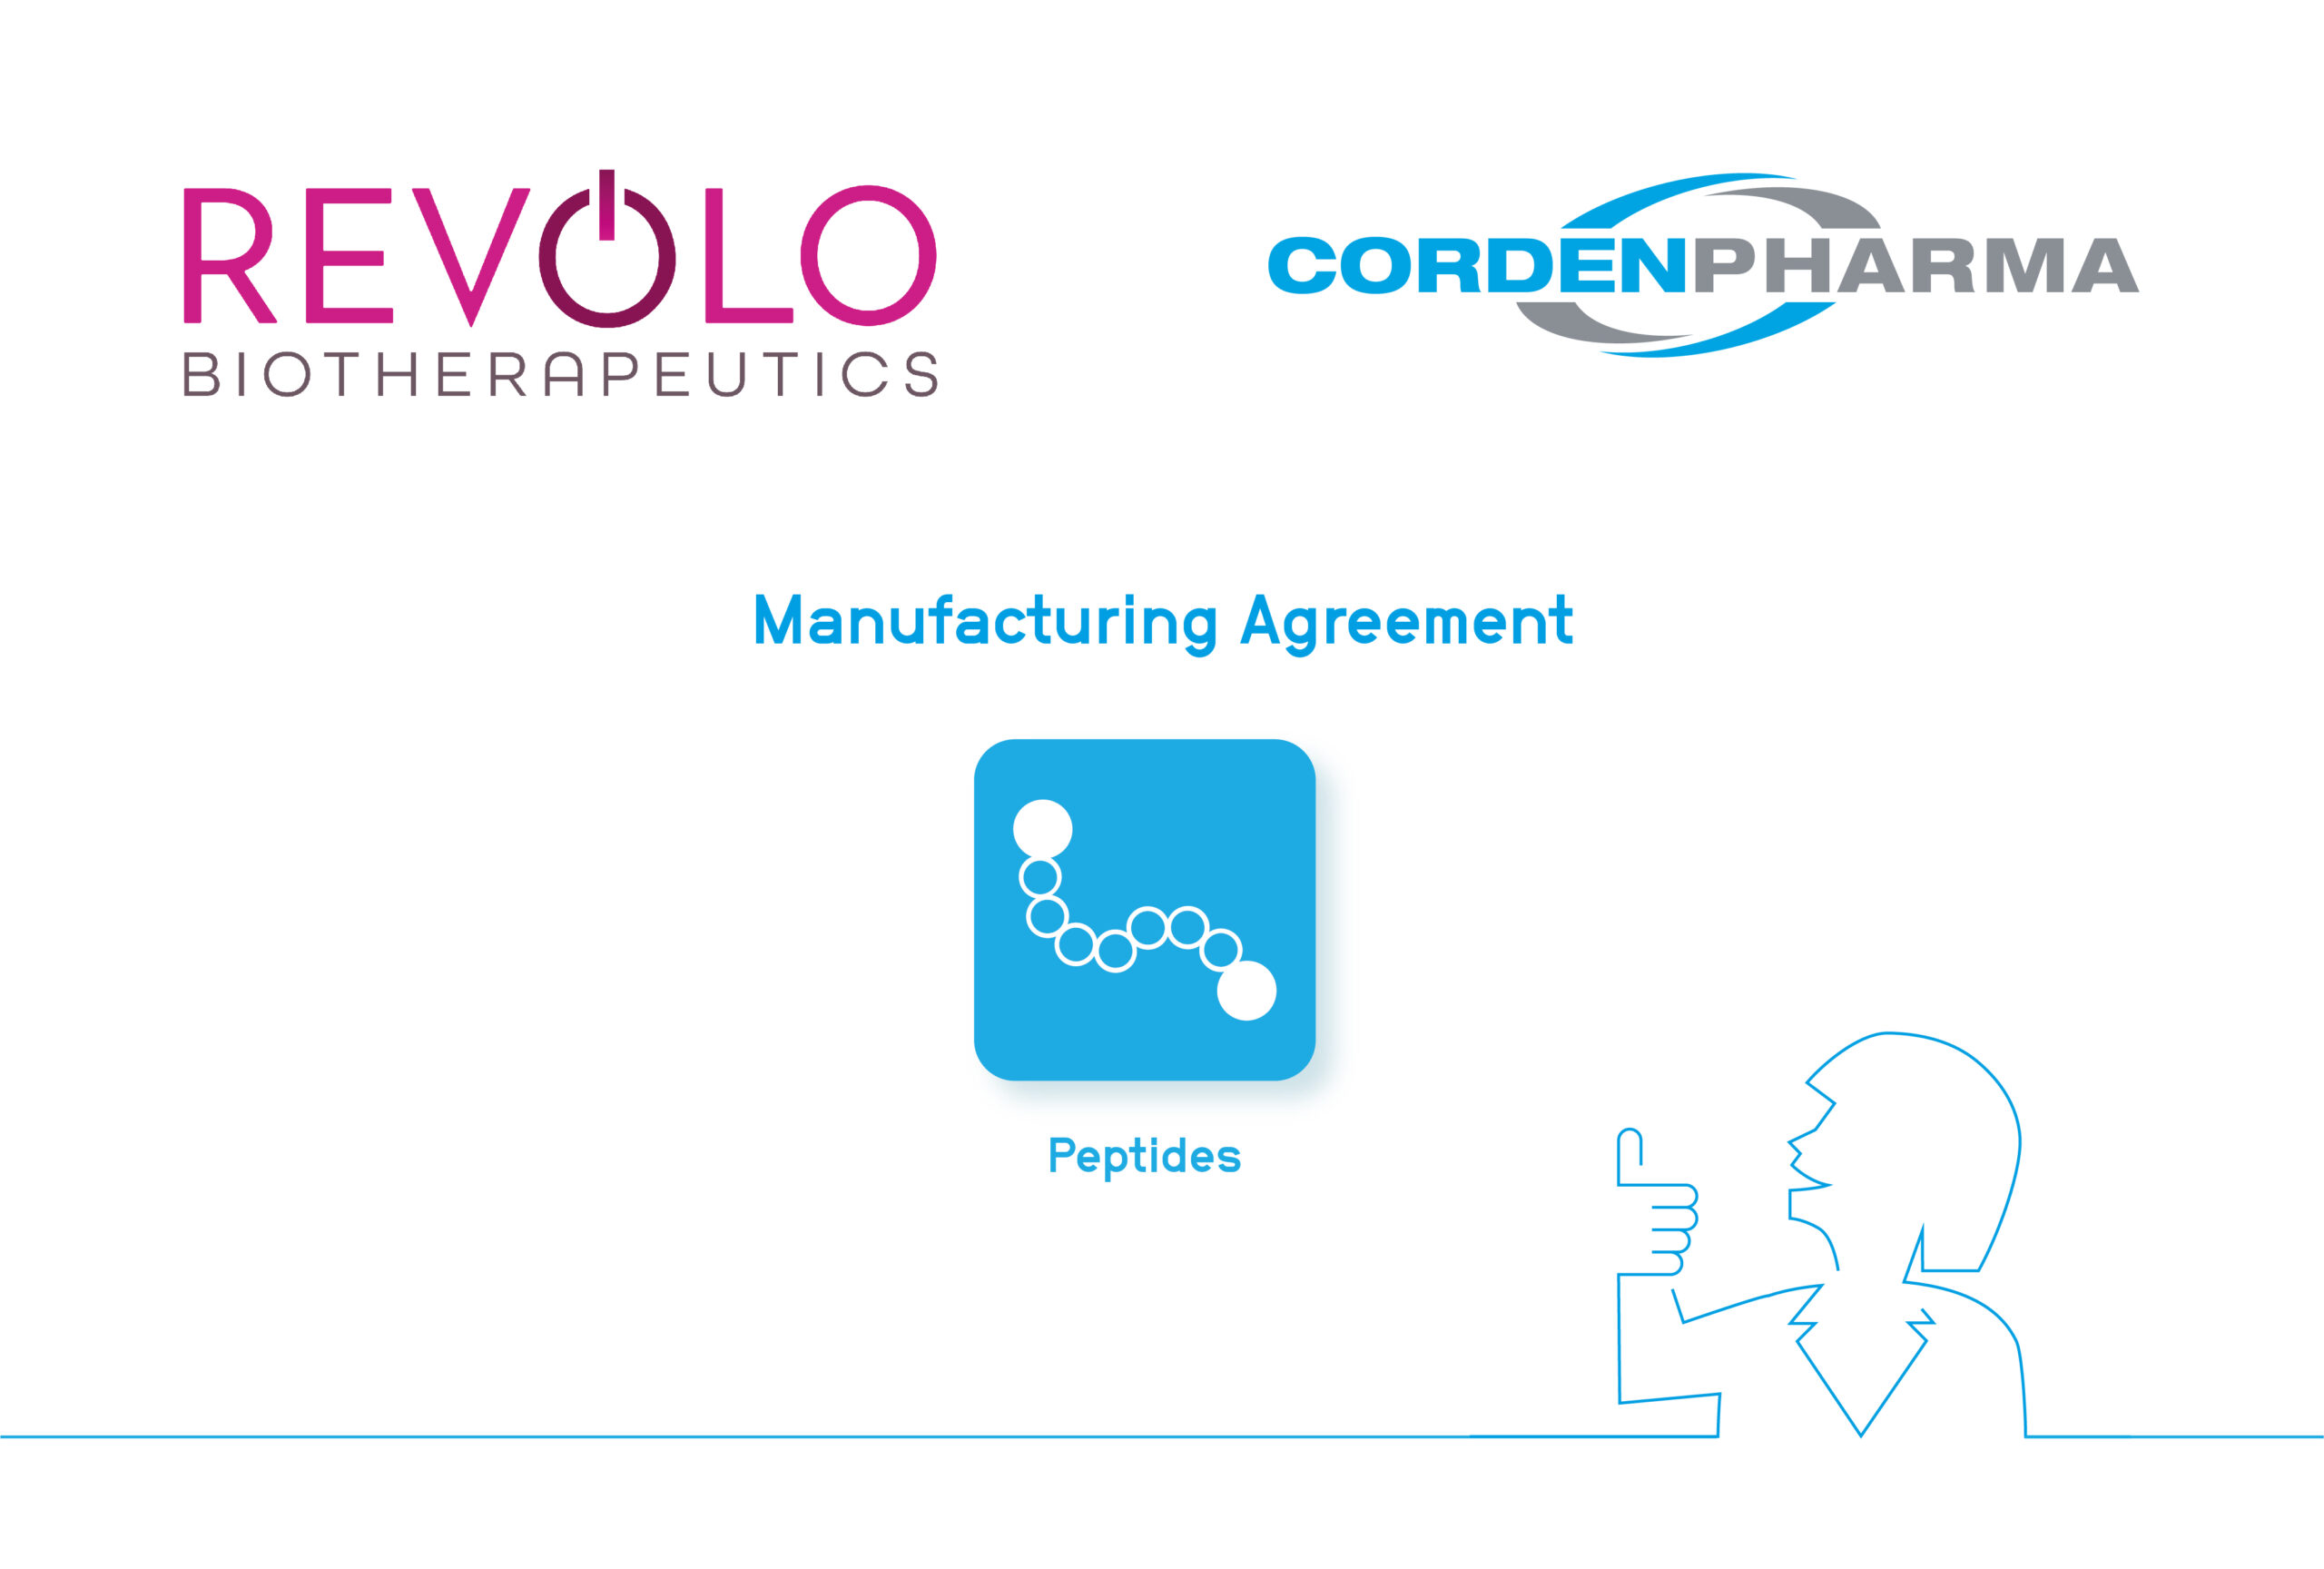 CordenPharma and Revolo Biotherapeutics sign a Manufacturing Agreement for Peptide APIs